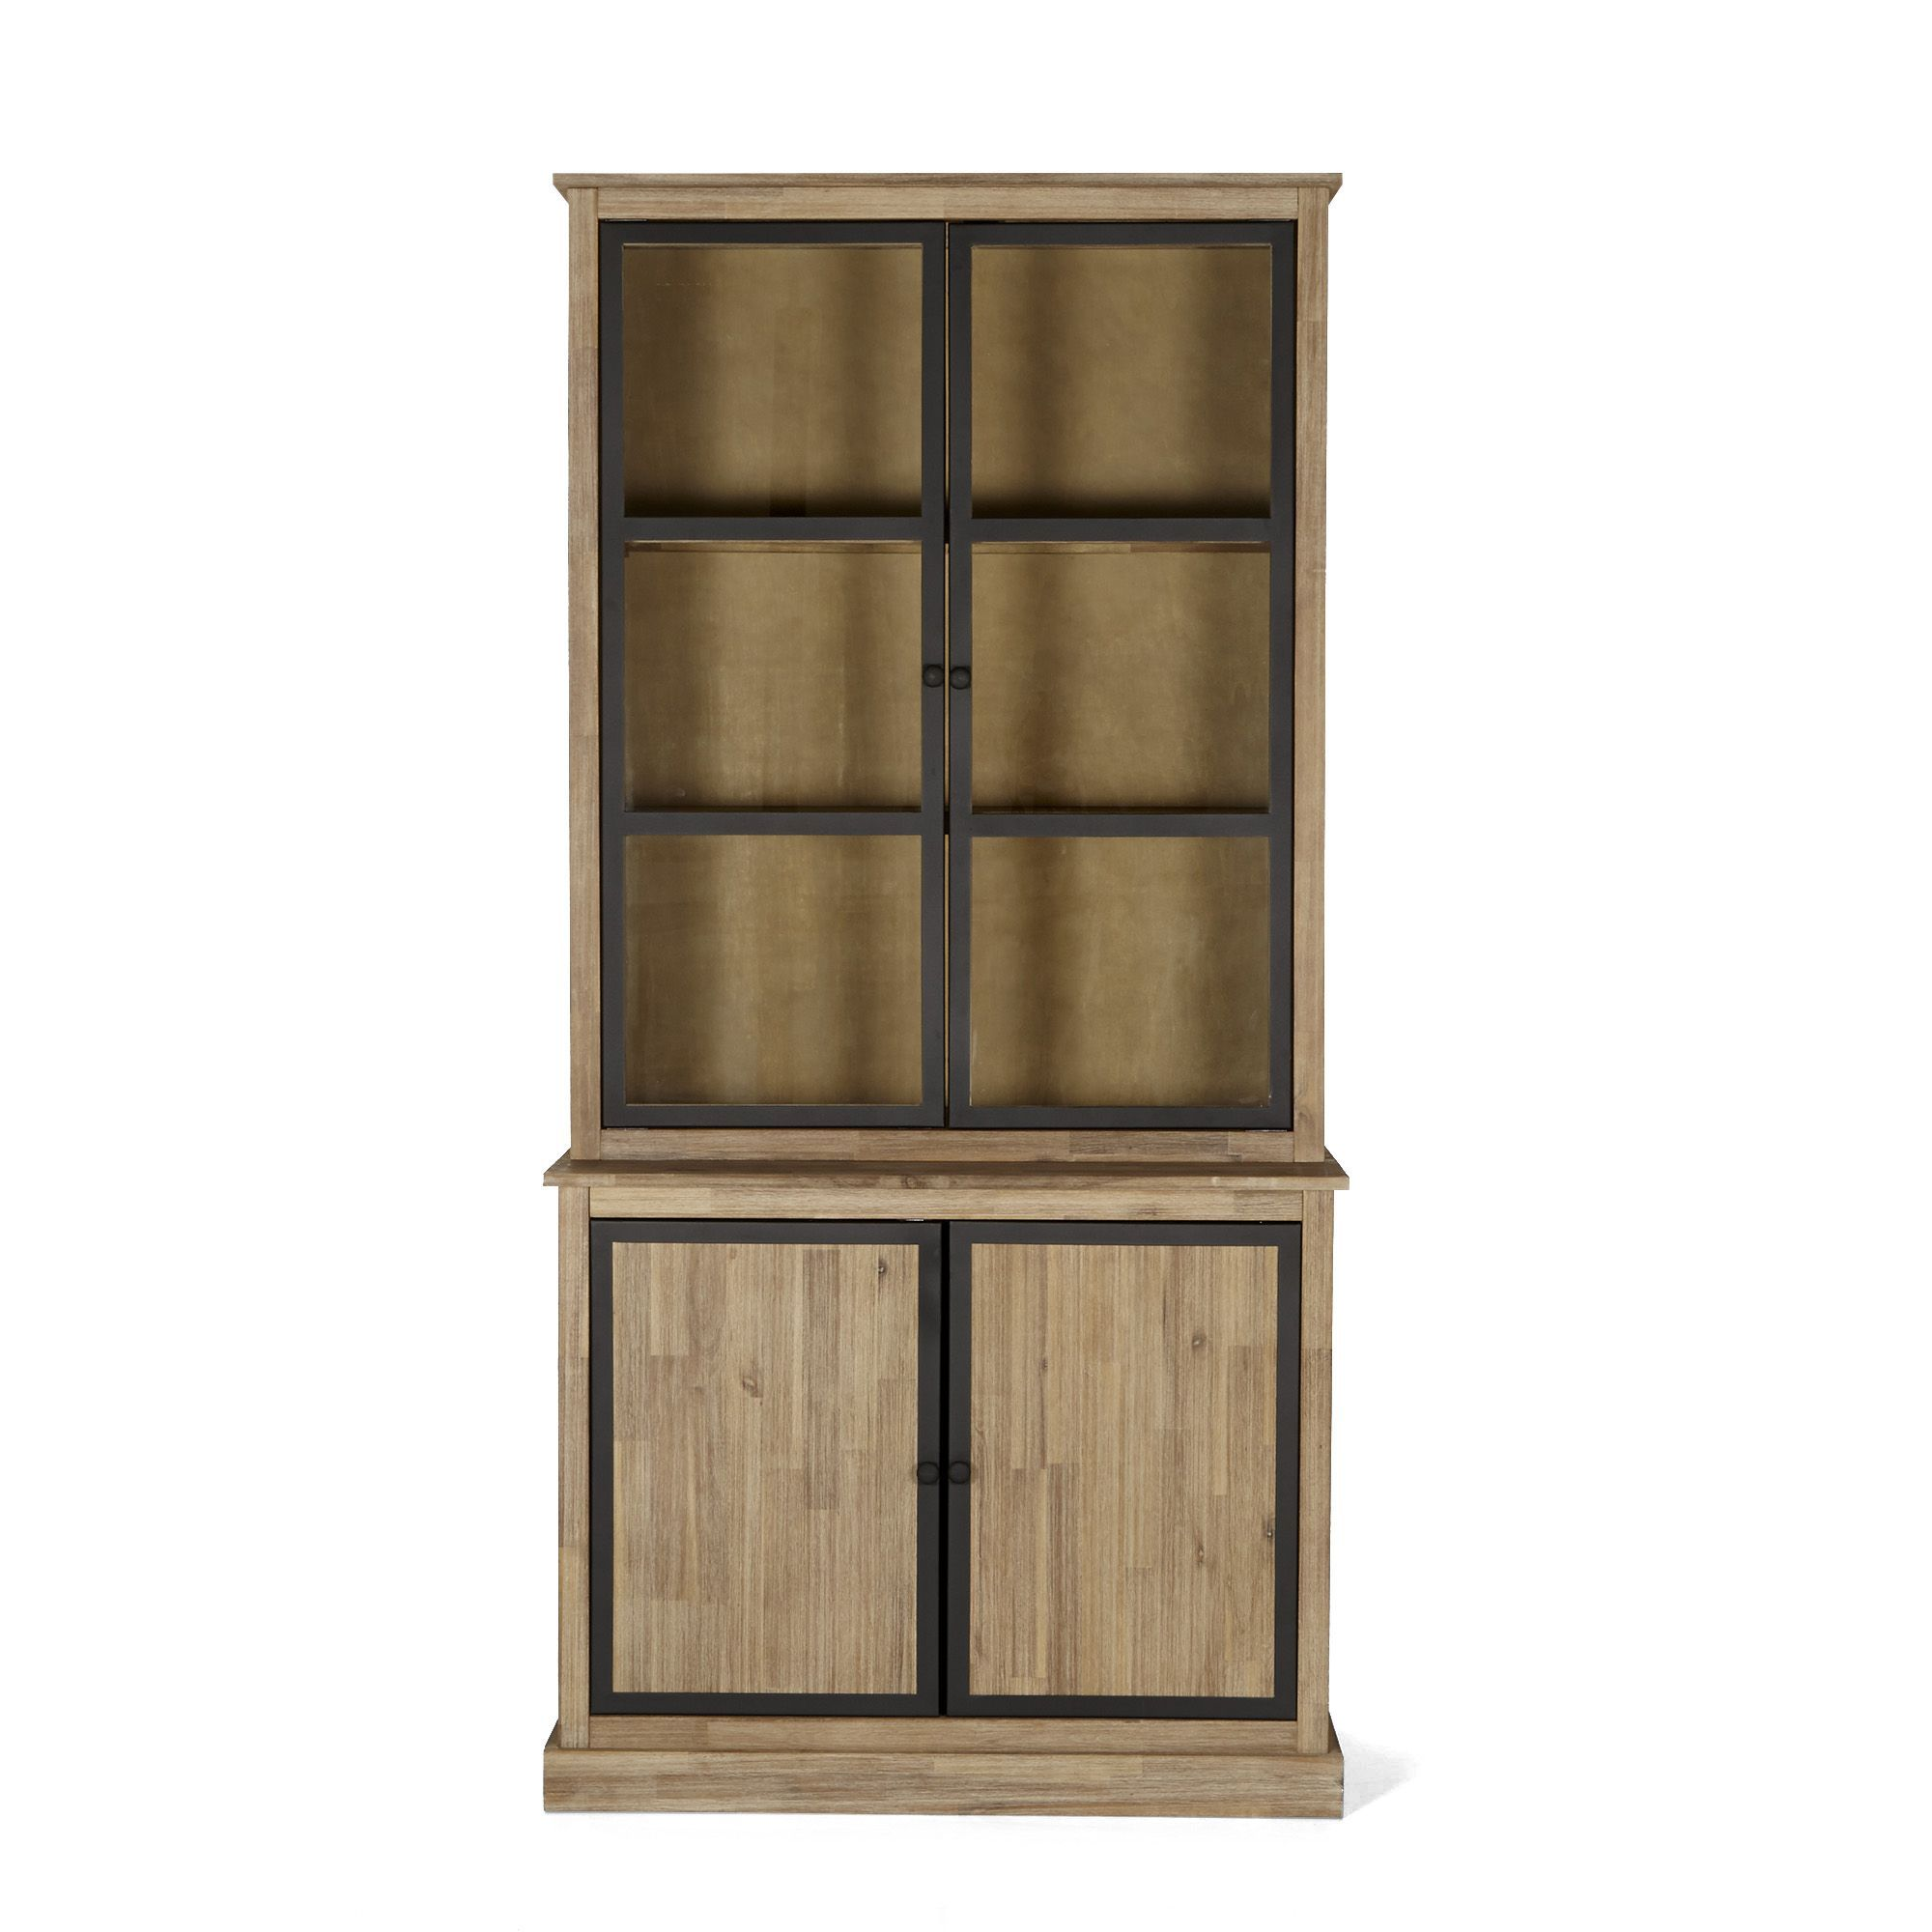 Alinea Meuble Salon Alinea Meuble Salon Meuble Salon Alinea Beautiful Armoire